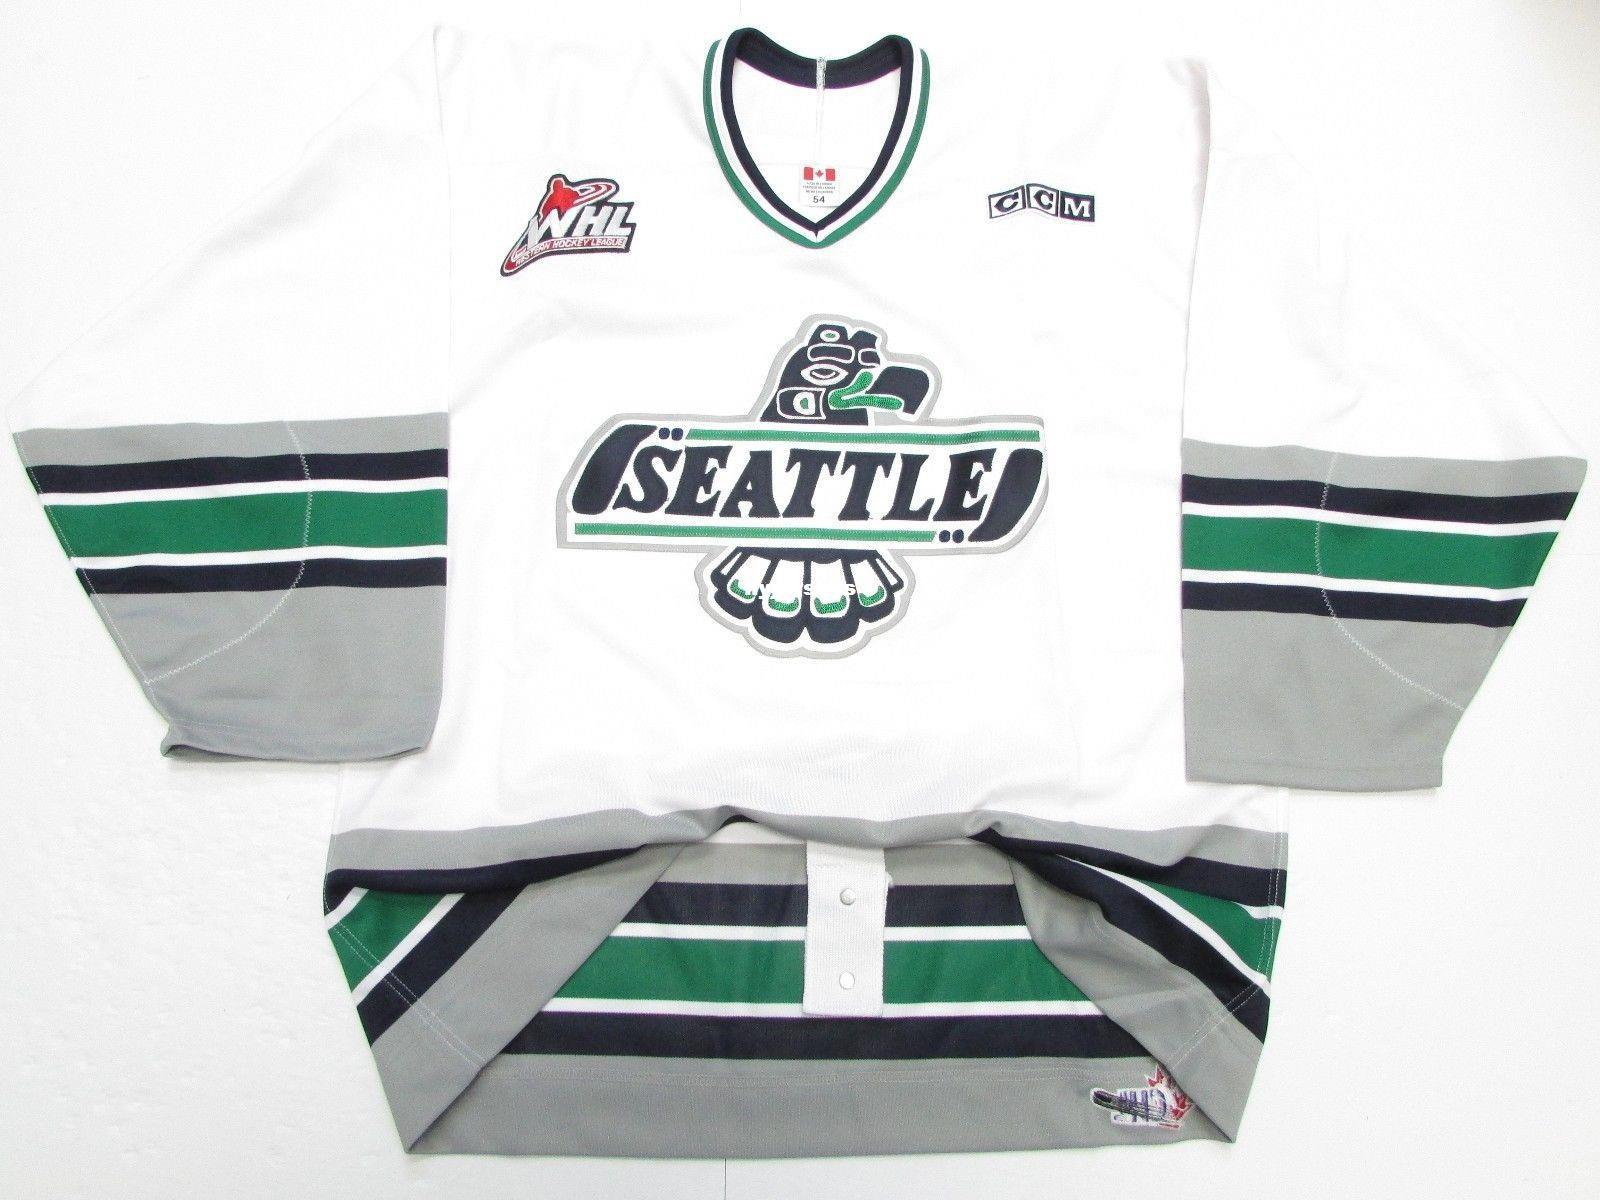 Cheap Custom SEATTLE THUNDERBIRDS WHL AUTHENTIC WHITE PRO CCM HOCKEY JERSEY  Mens Jerseys UK 2019 From Hyjerseys 94c80af9e36